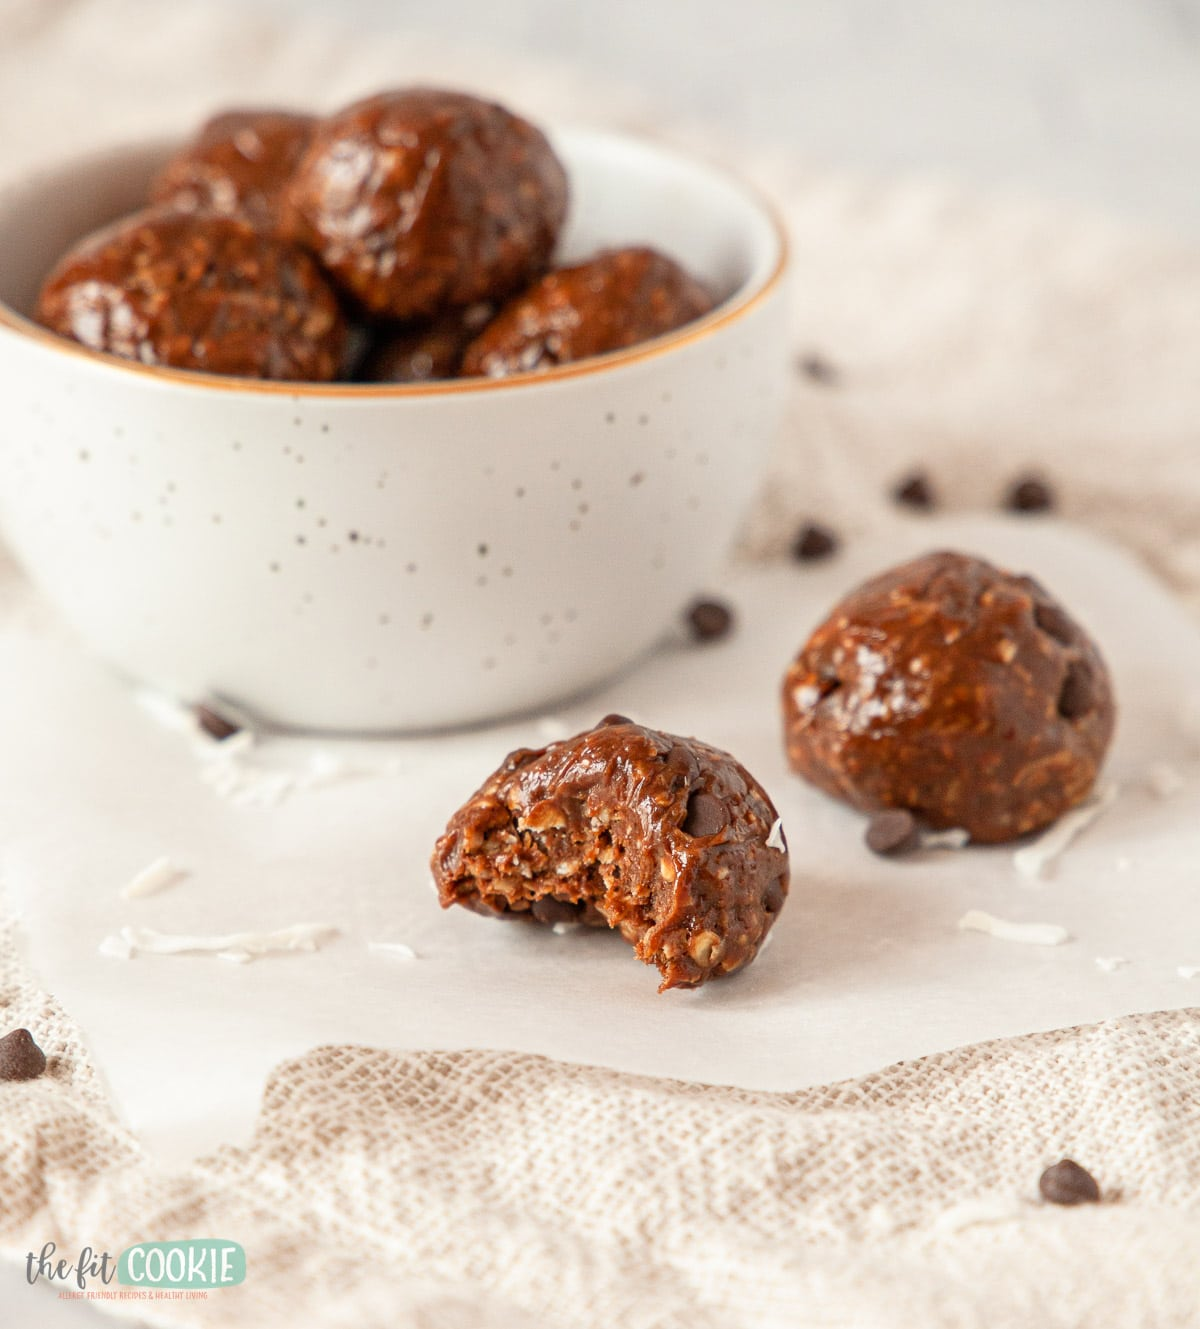 close up photo of chocolate energy ball with a bite taken